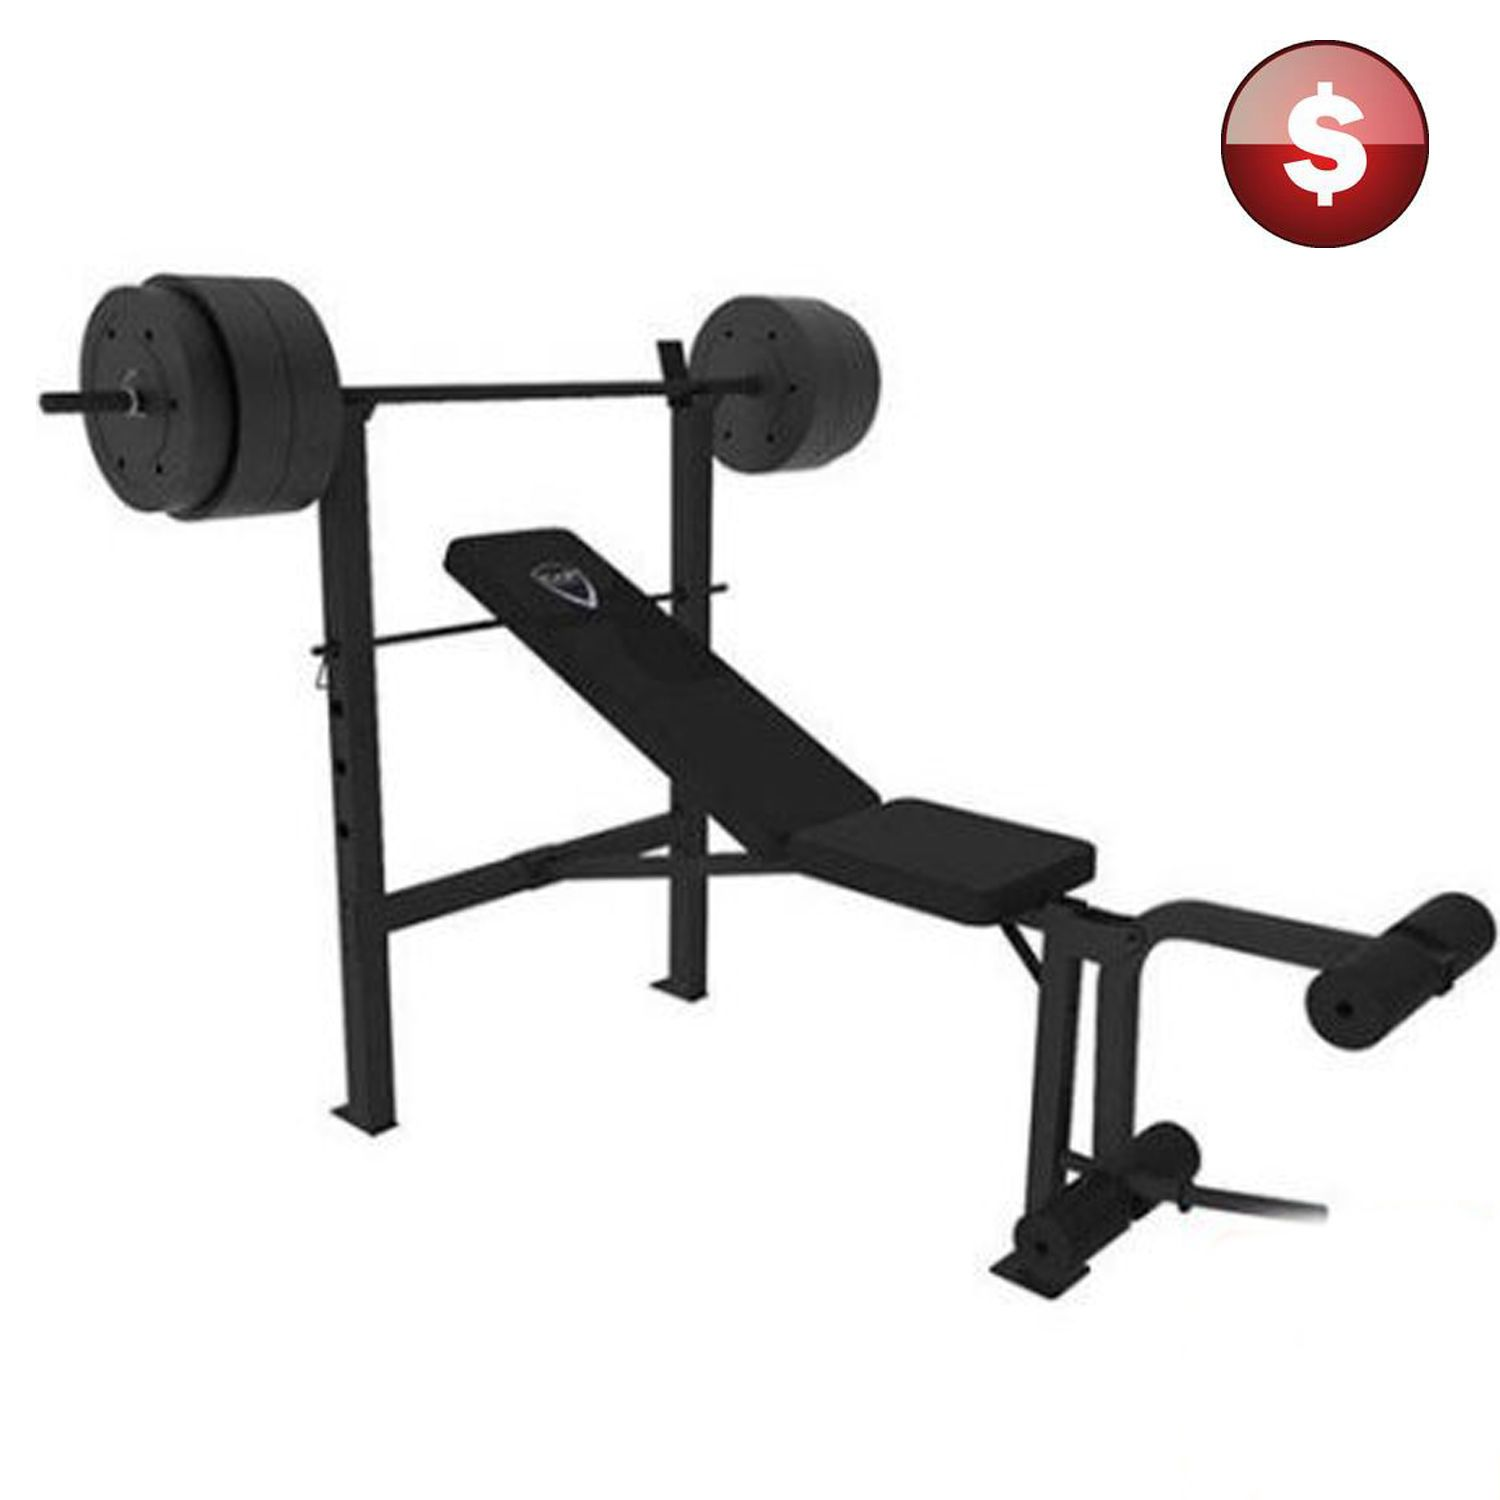 press weight vinyl gym lb home barbell cap workout pin bench weights set lifting